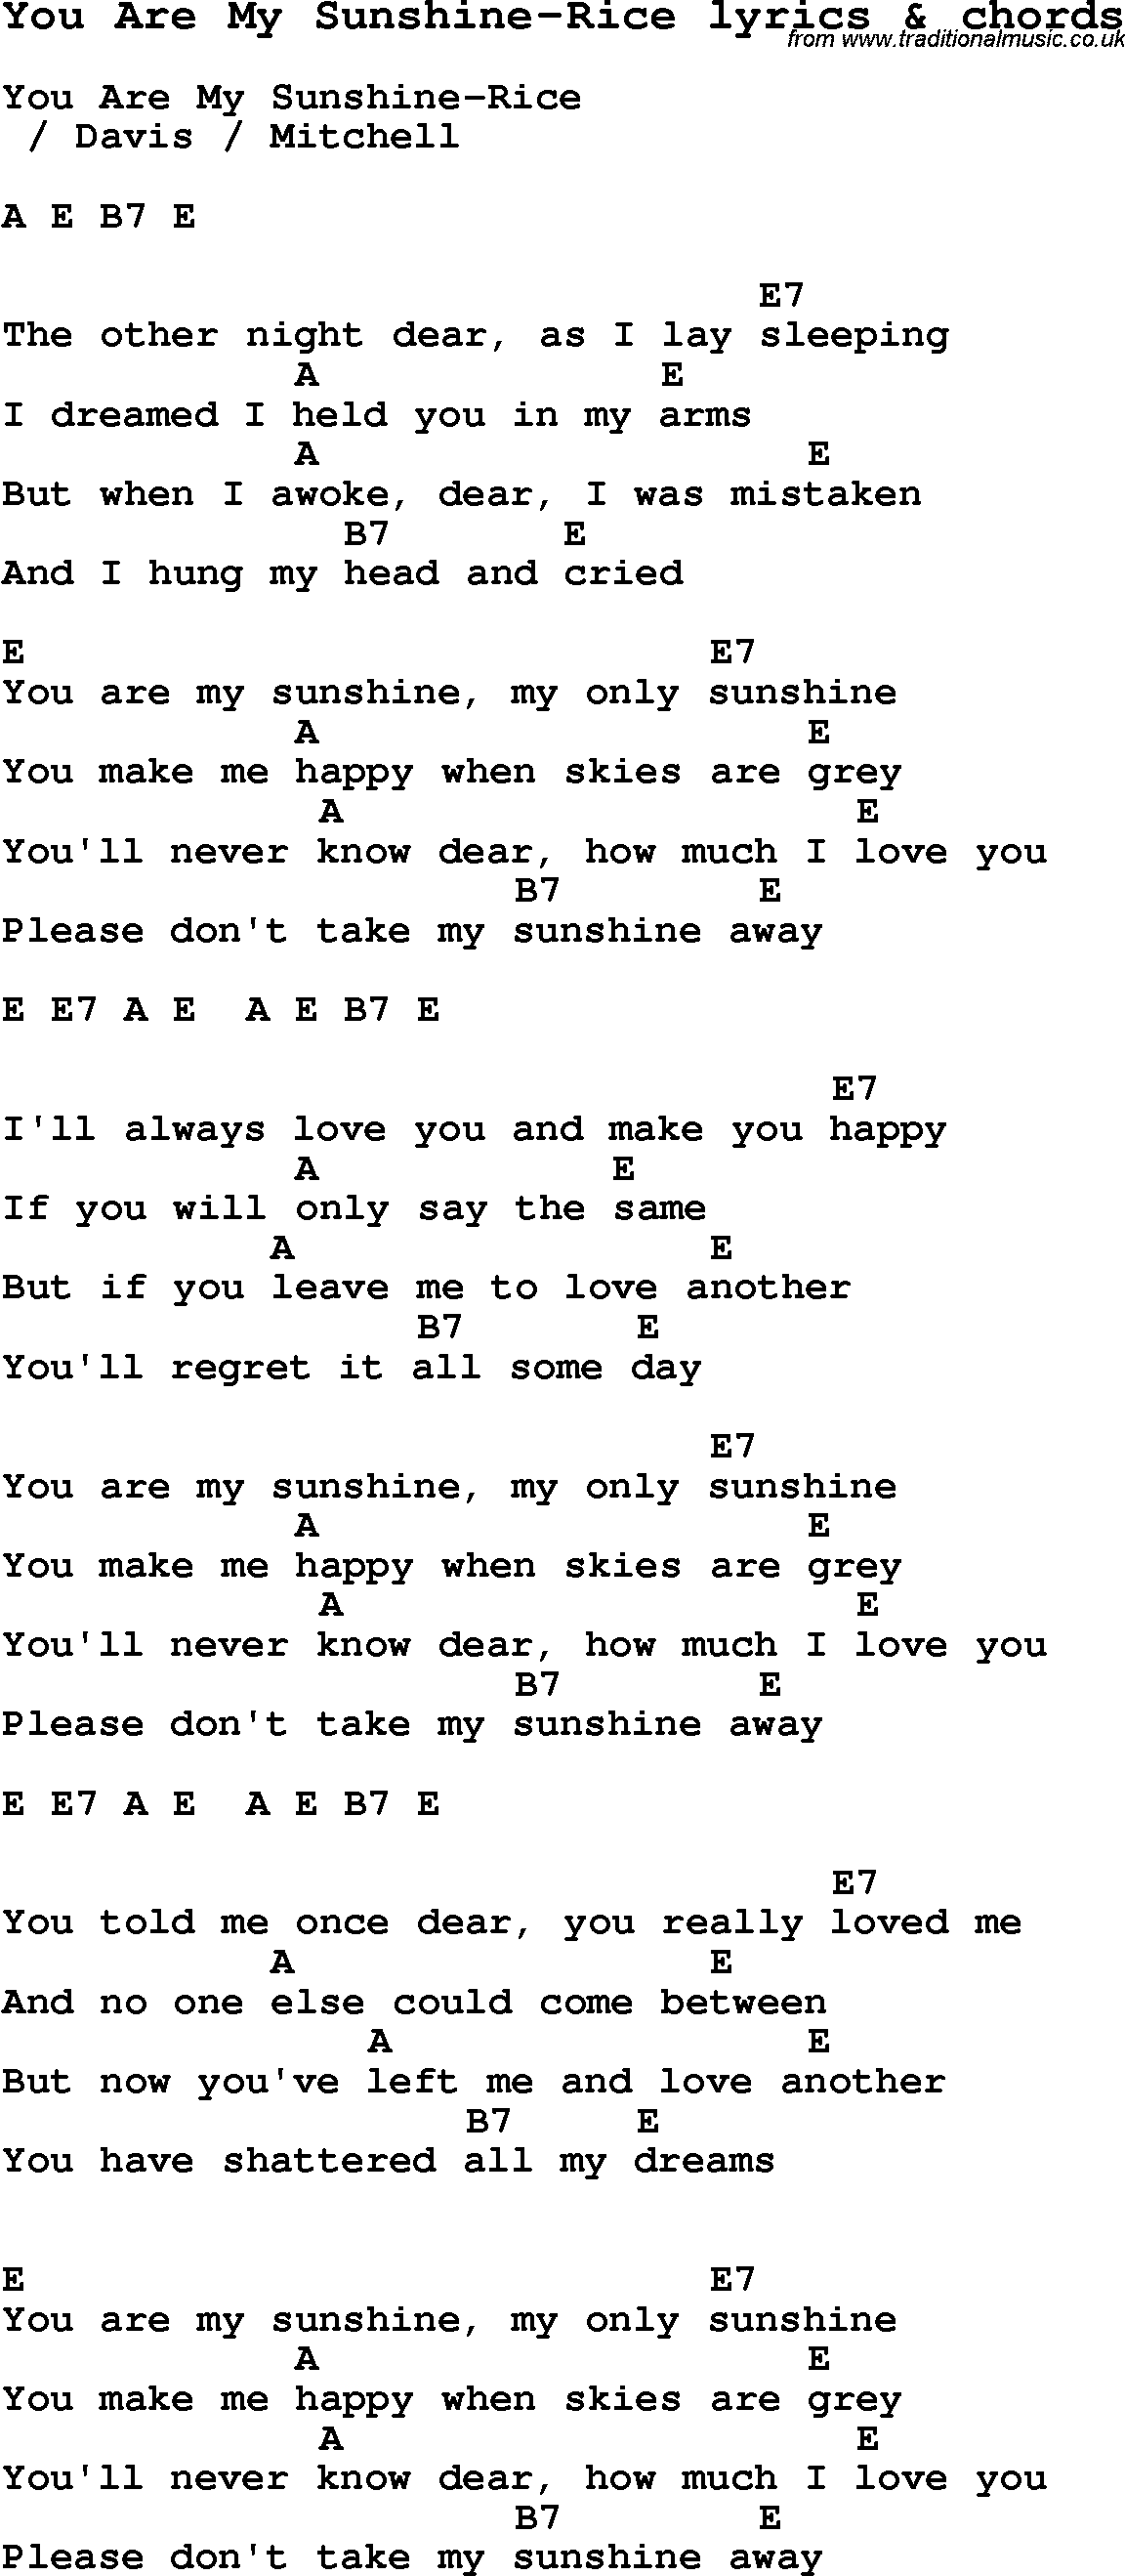 Love Song Lyrics For You Are My Sunshine Rice With Chords For